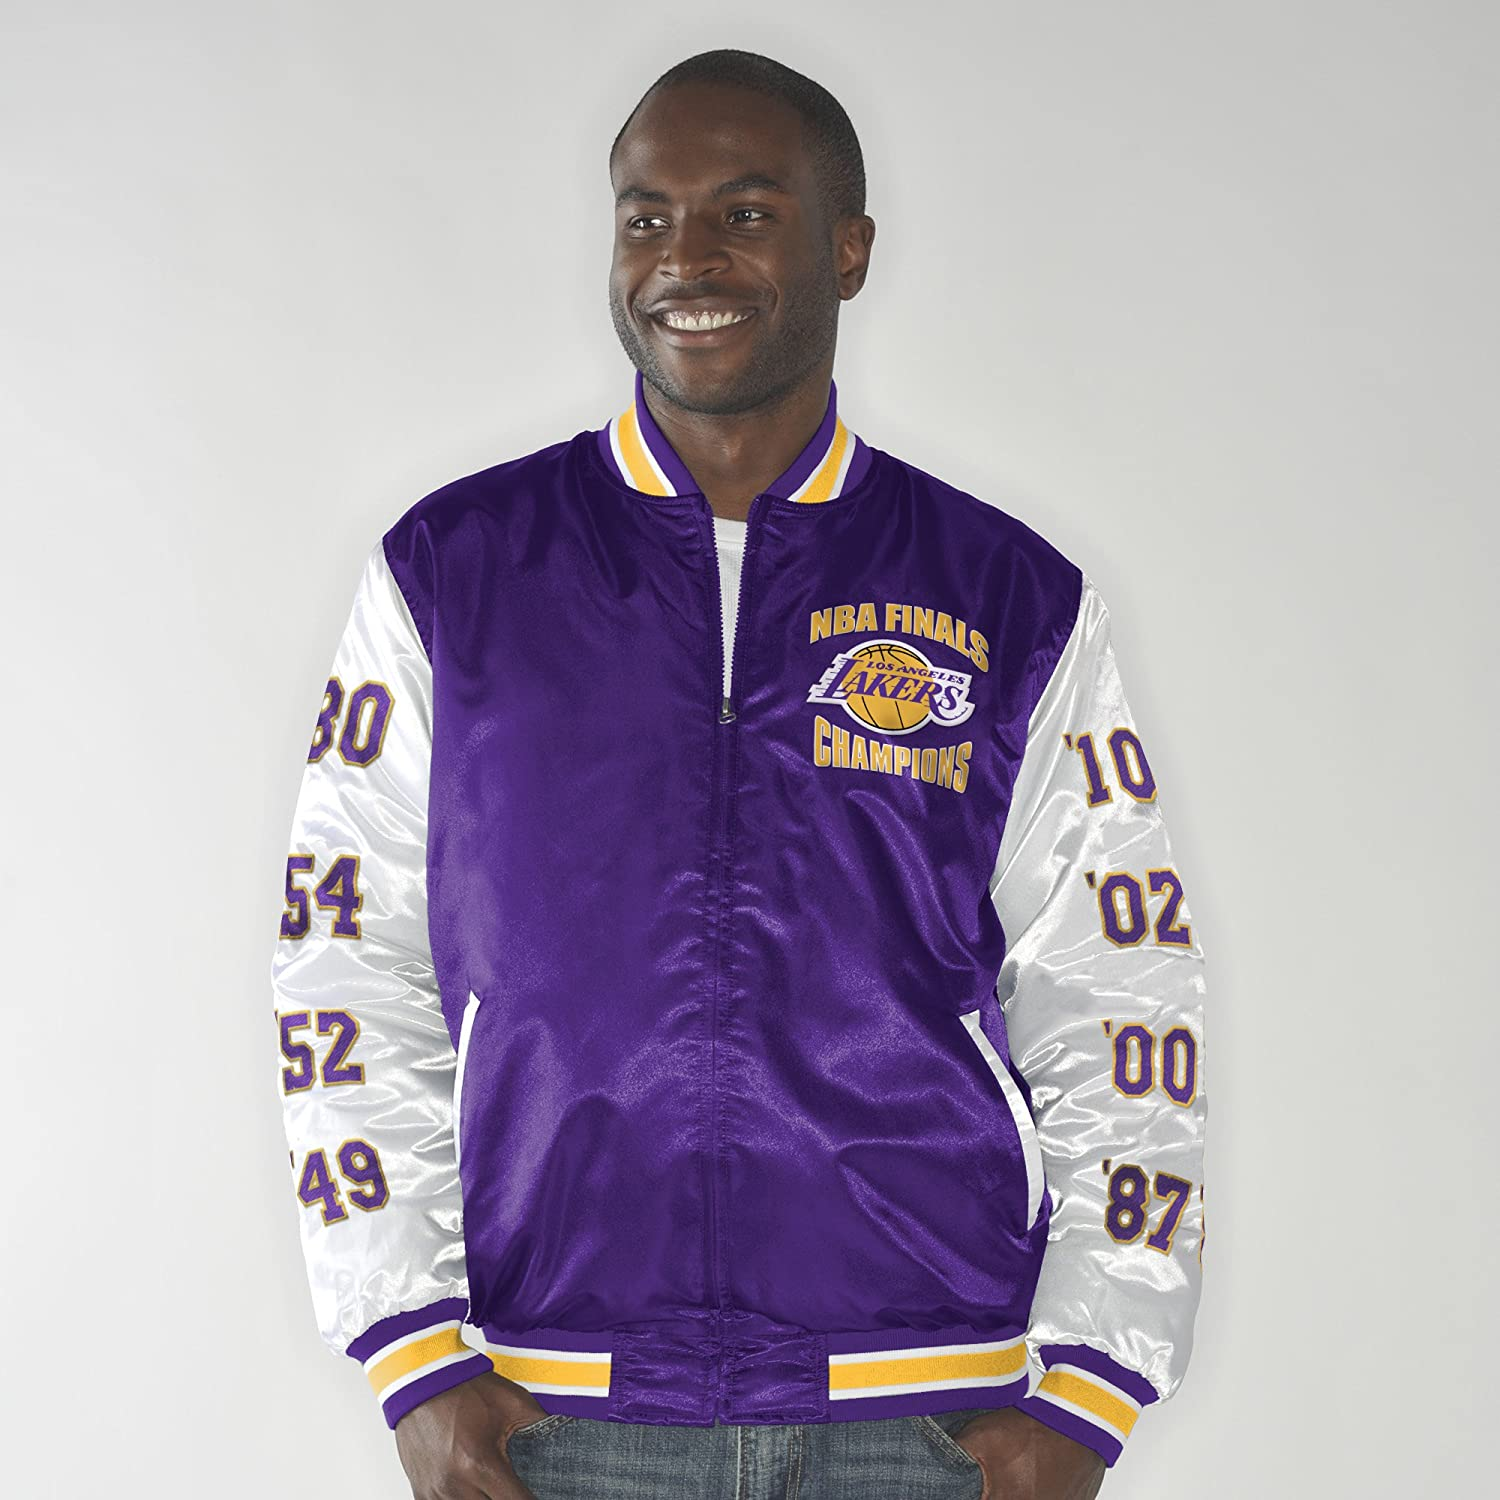 G Iii Sports Los Angeles Lakers Up The Gut Nba Finals Champs Commemorative Satin Jacket Xxx Large Outerwear Clothing Cjp Org In